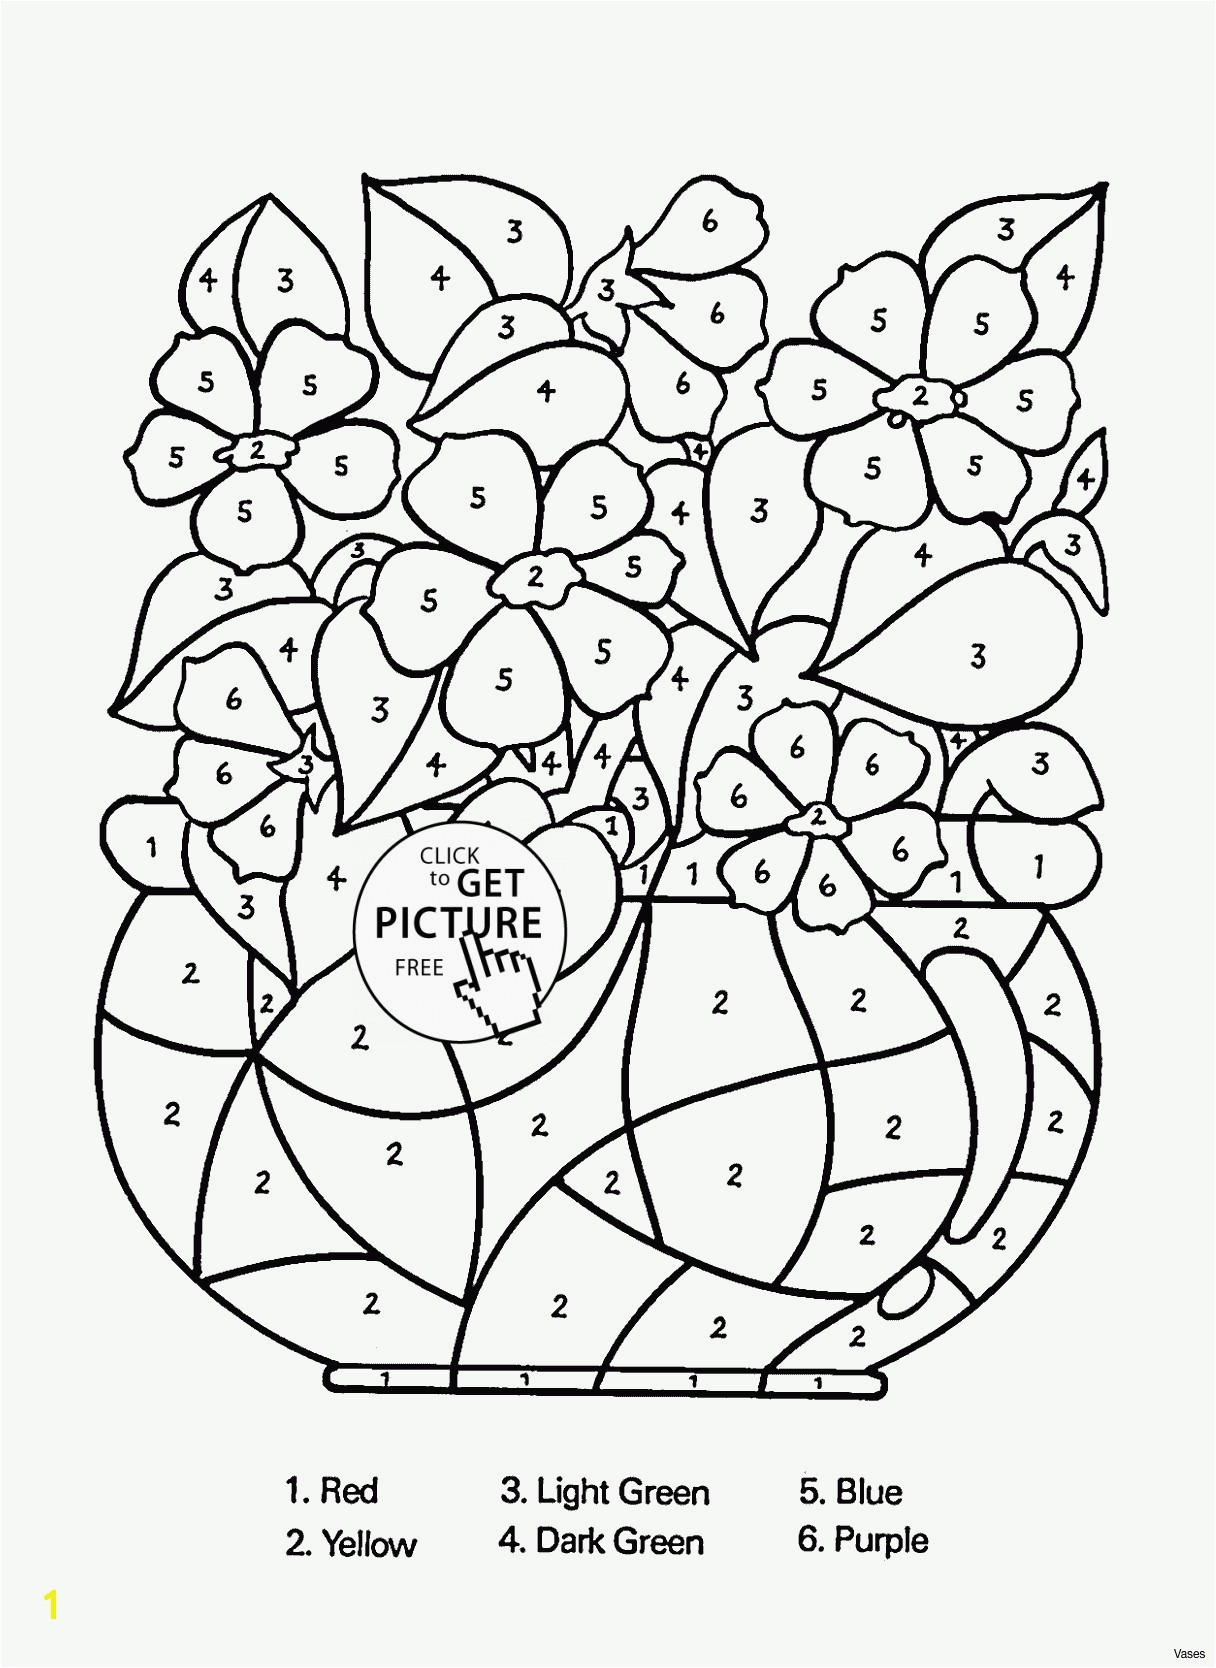 Fall Leaf Coloring Pages Fall Leaves Coloring Pages Printable Free Kids S Best Page Coloring